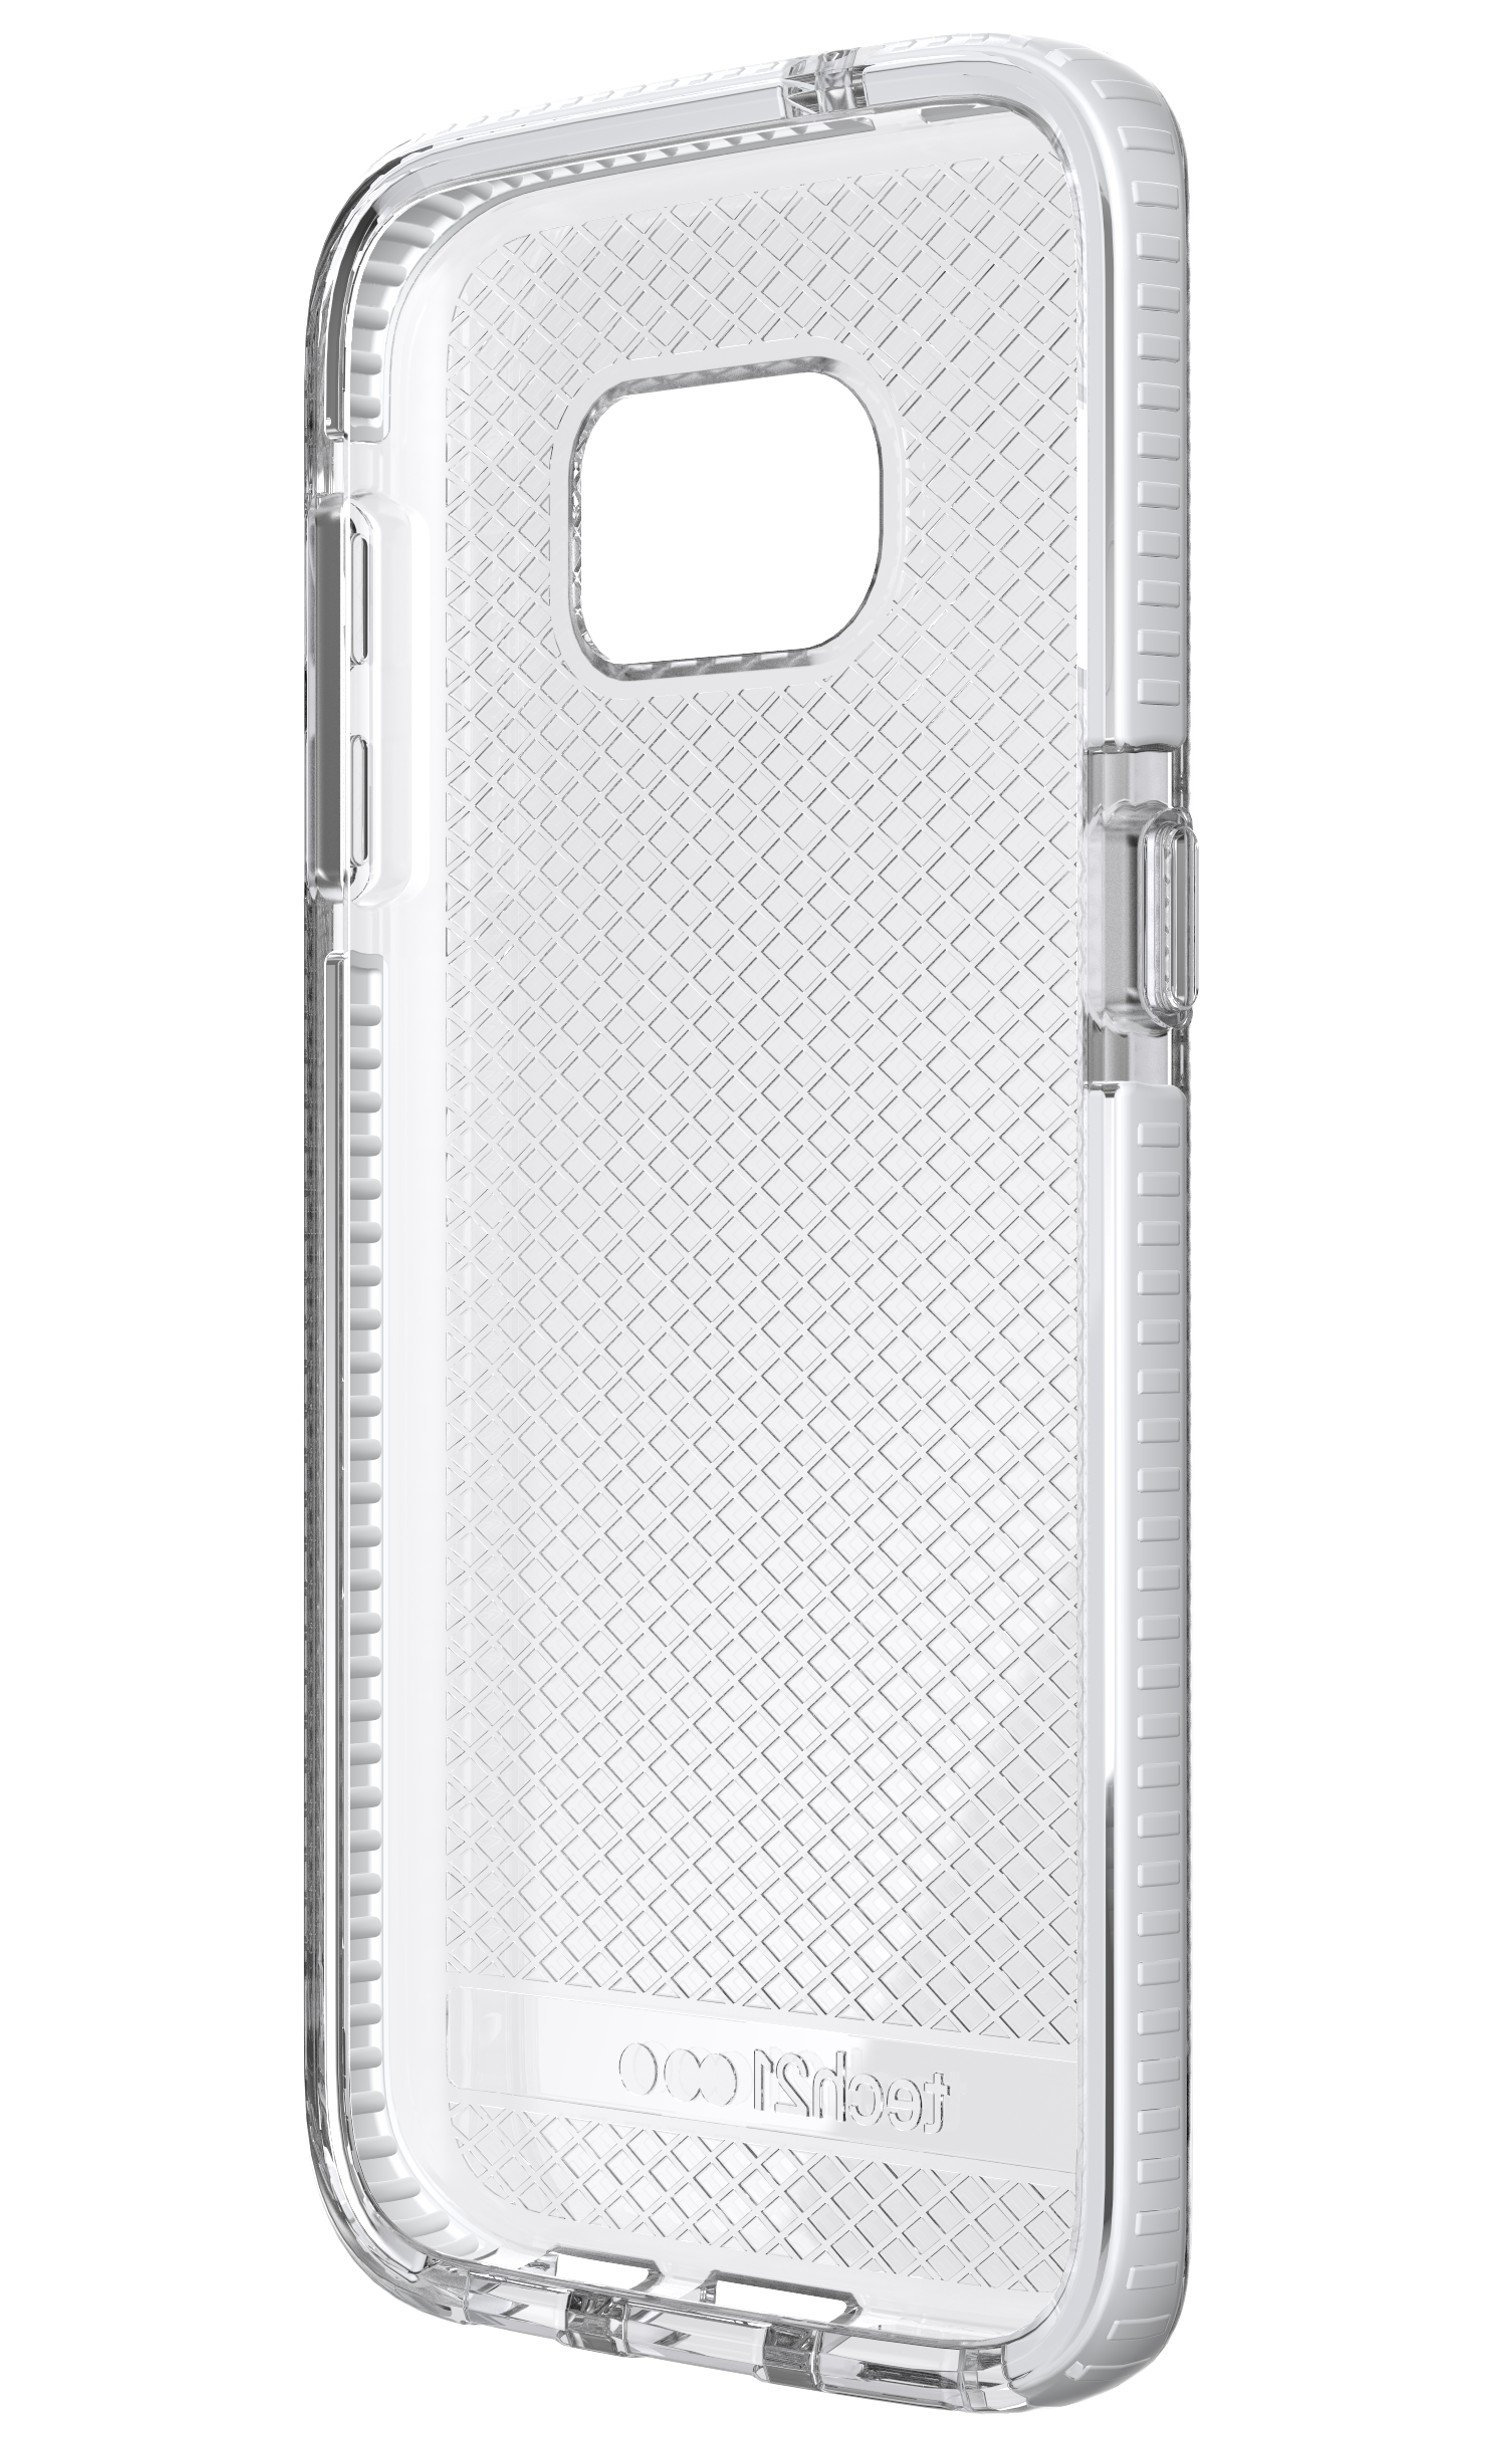 Tech21 Evo Check Case for Galaxy S7 - Clear/White by tech21 (Image #7)